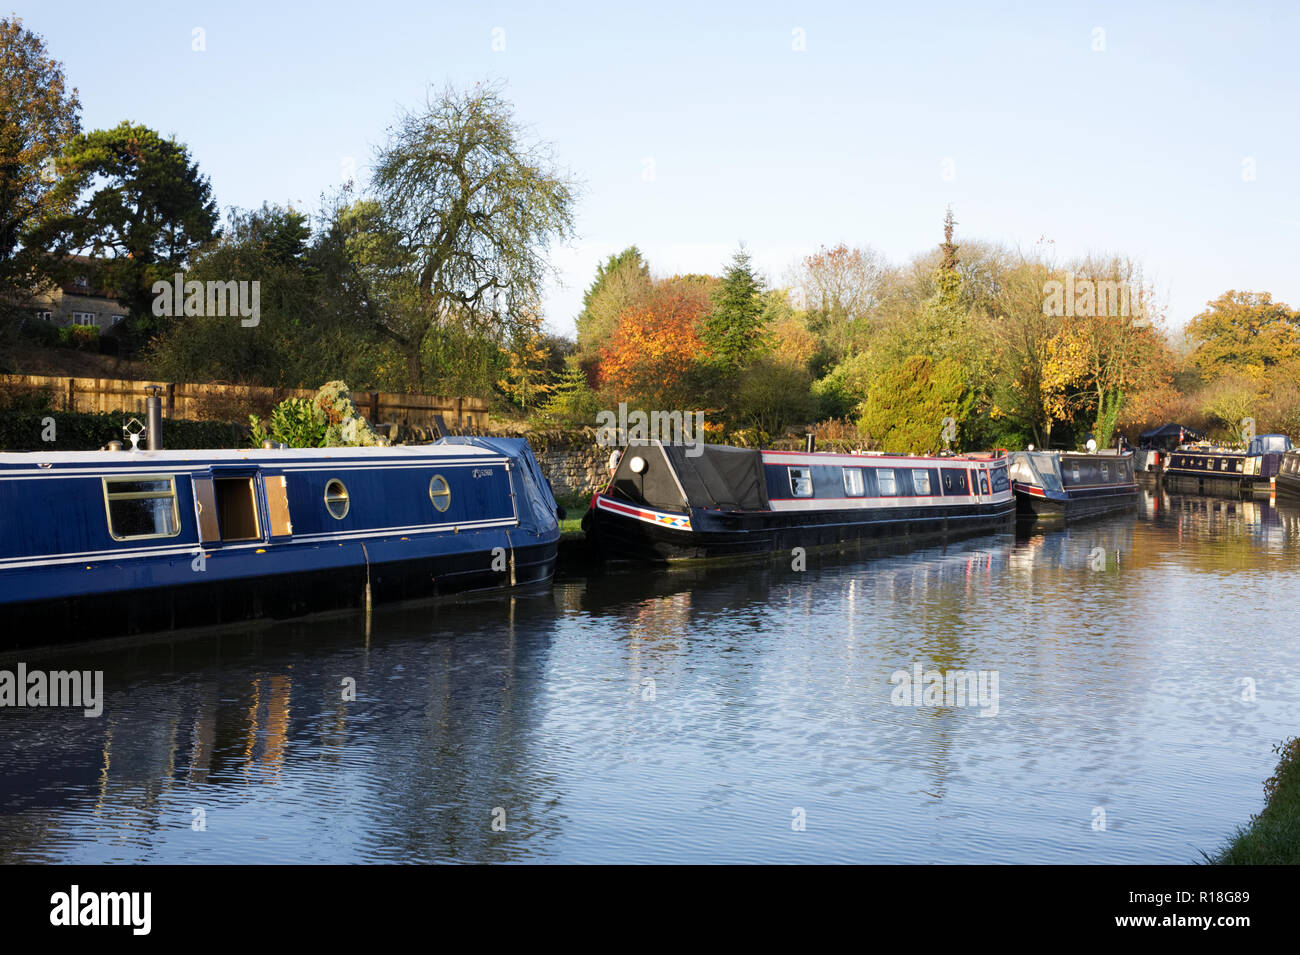 The Grand Union canal at Stoke Bruerne. - Stock Image